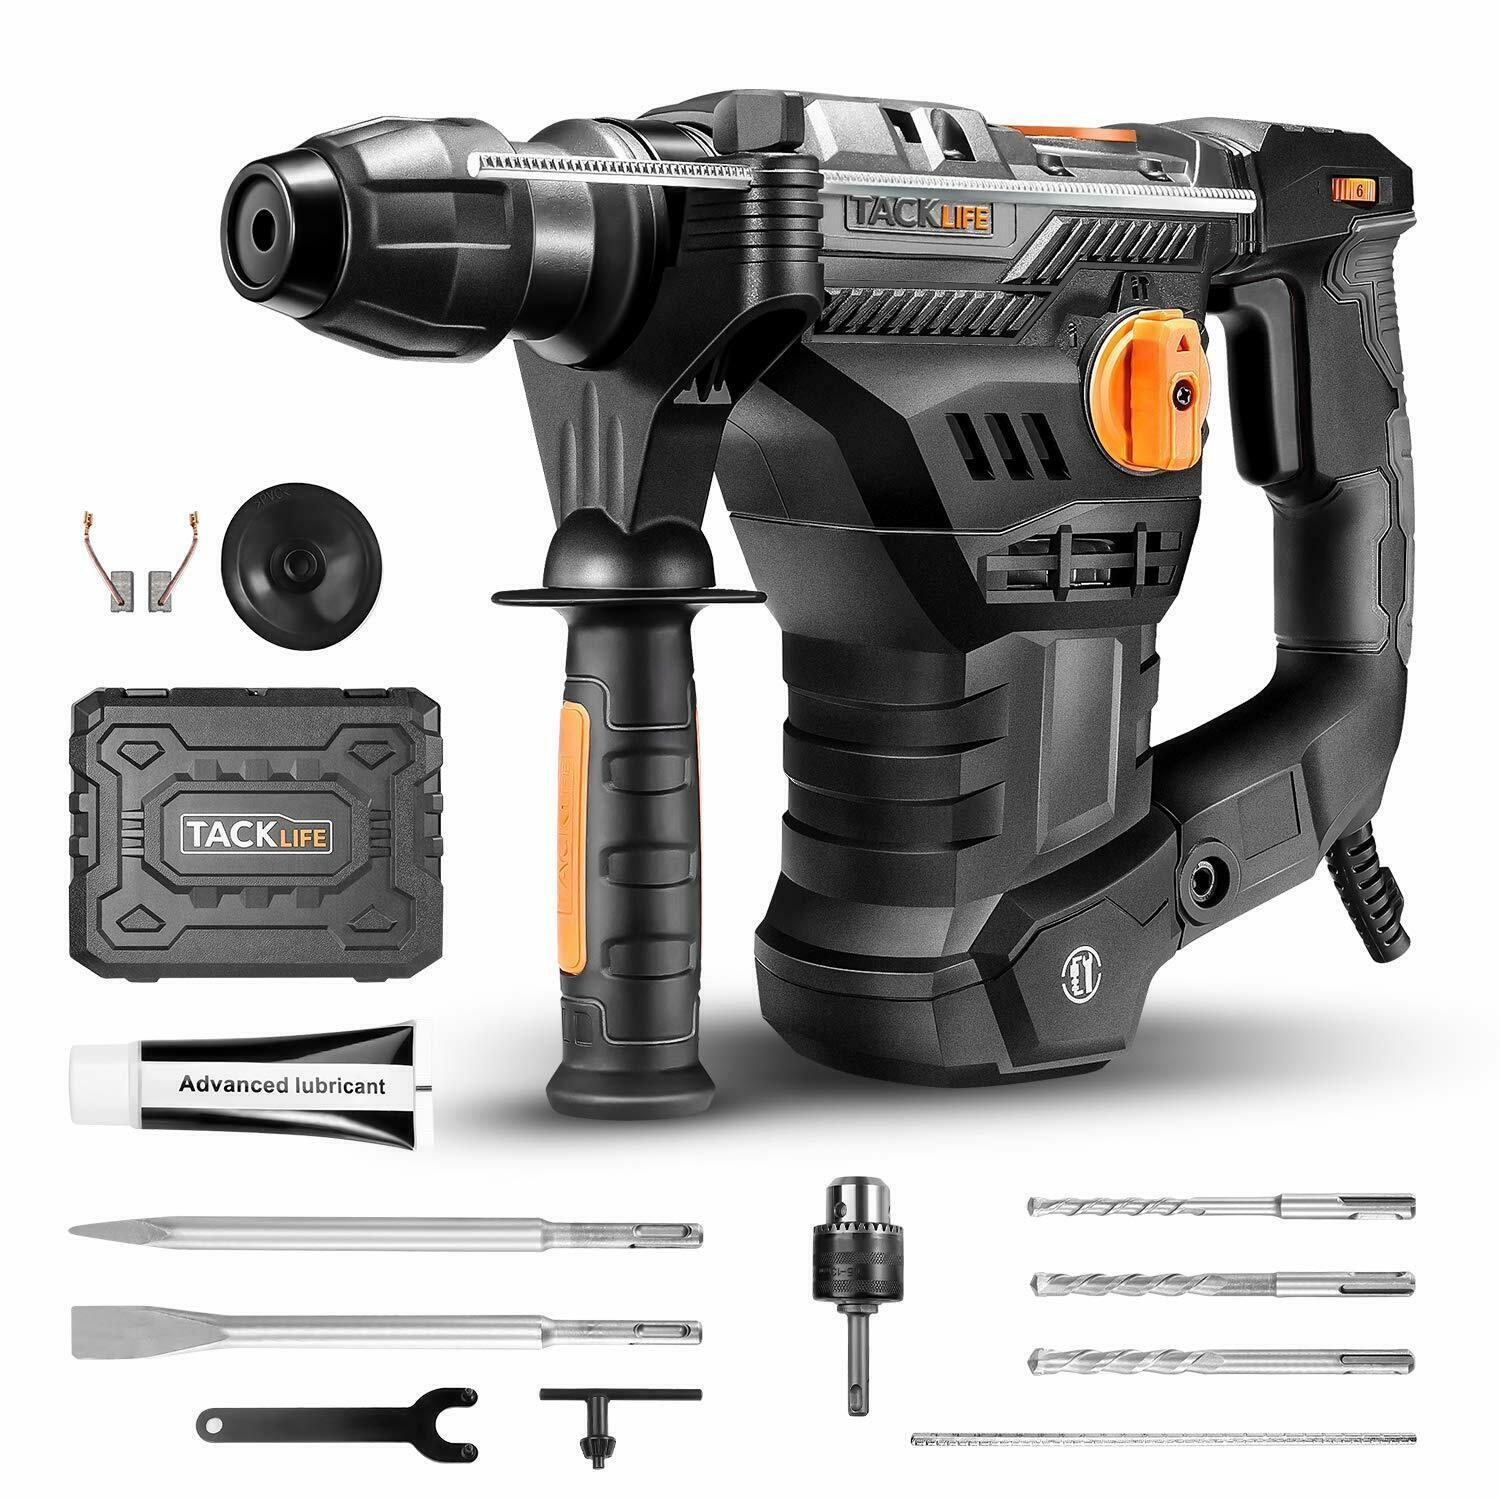 TACKLIFE 1-1/4 Inch SDS-Plus 12.5 Amp Rotary Hammer Drill, 7